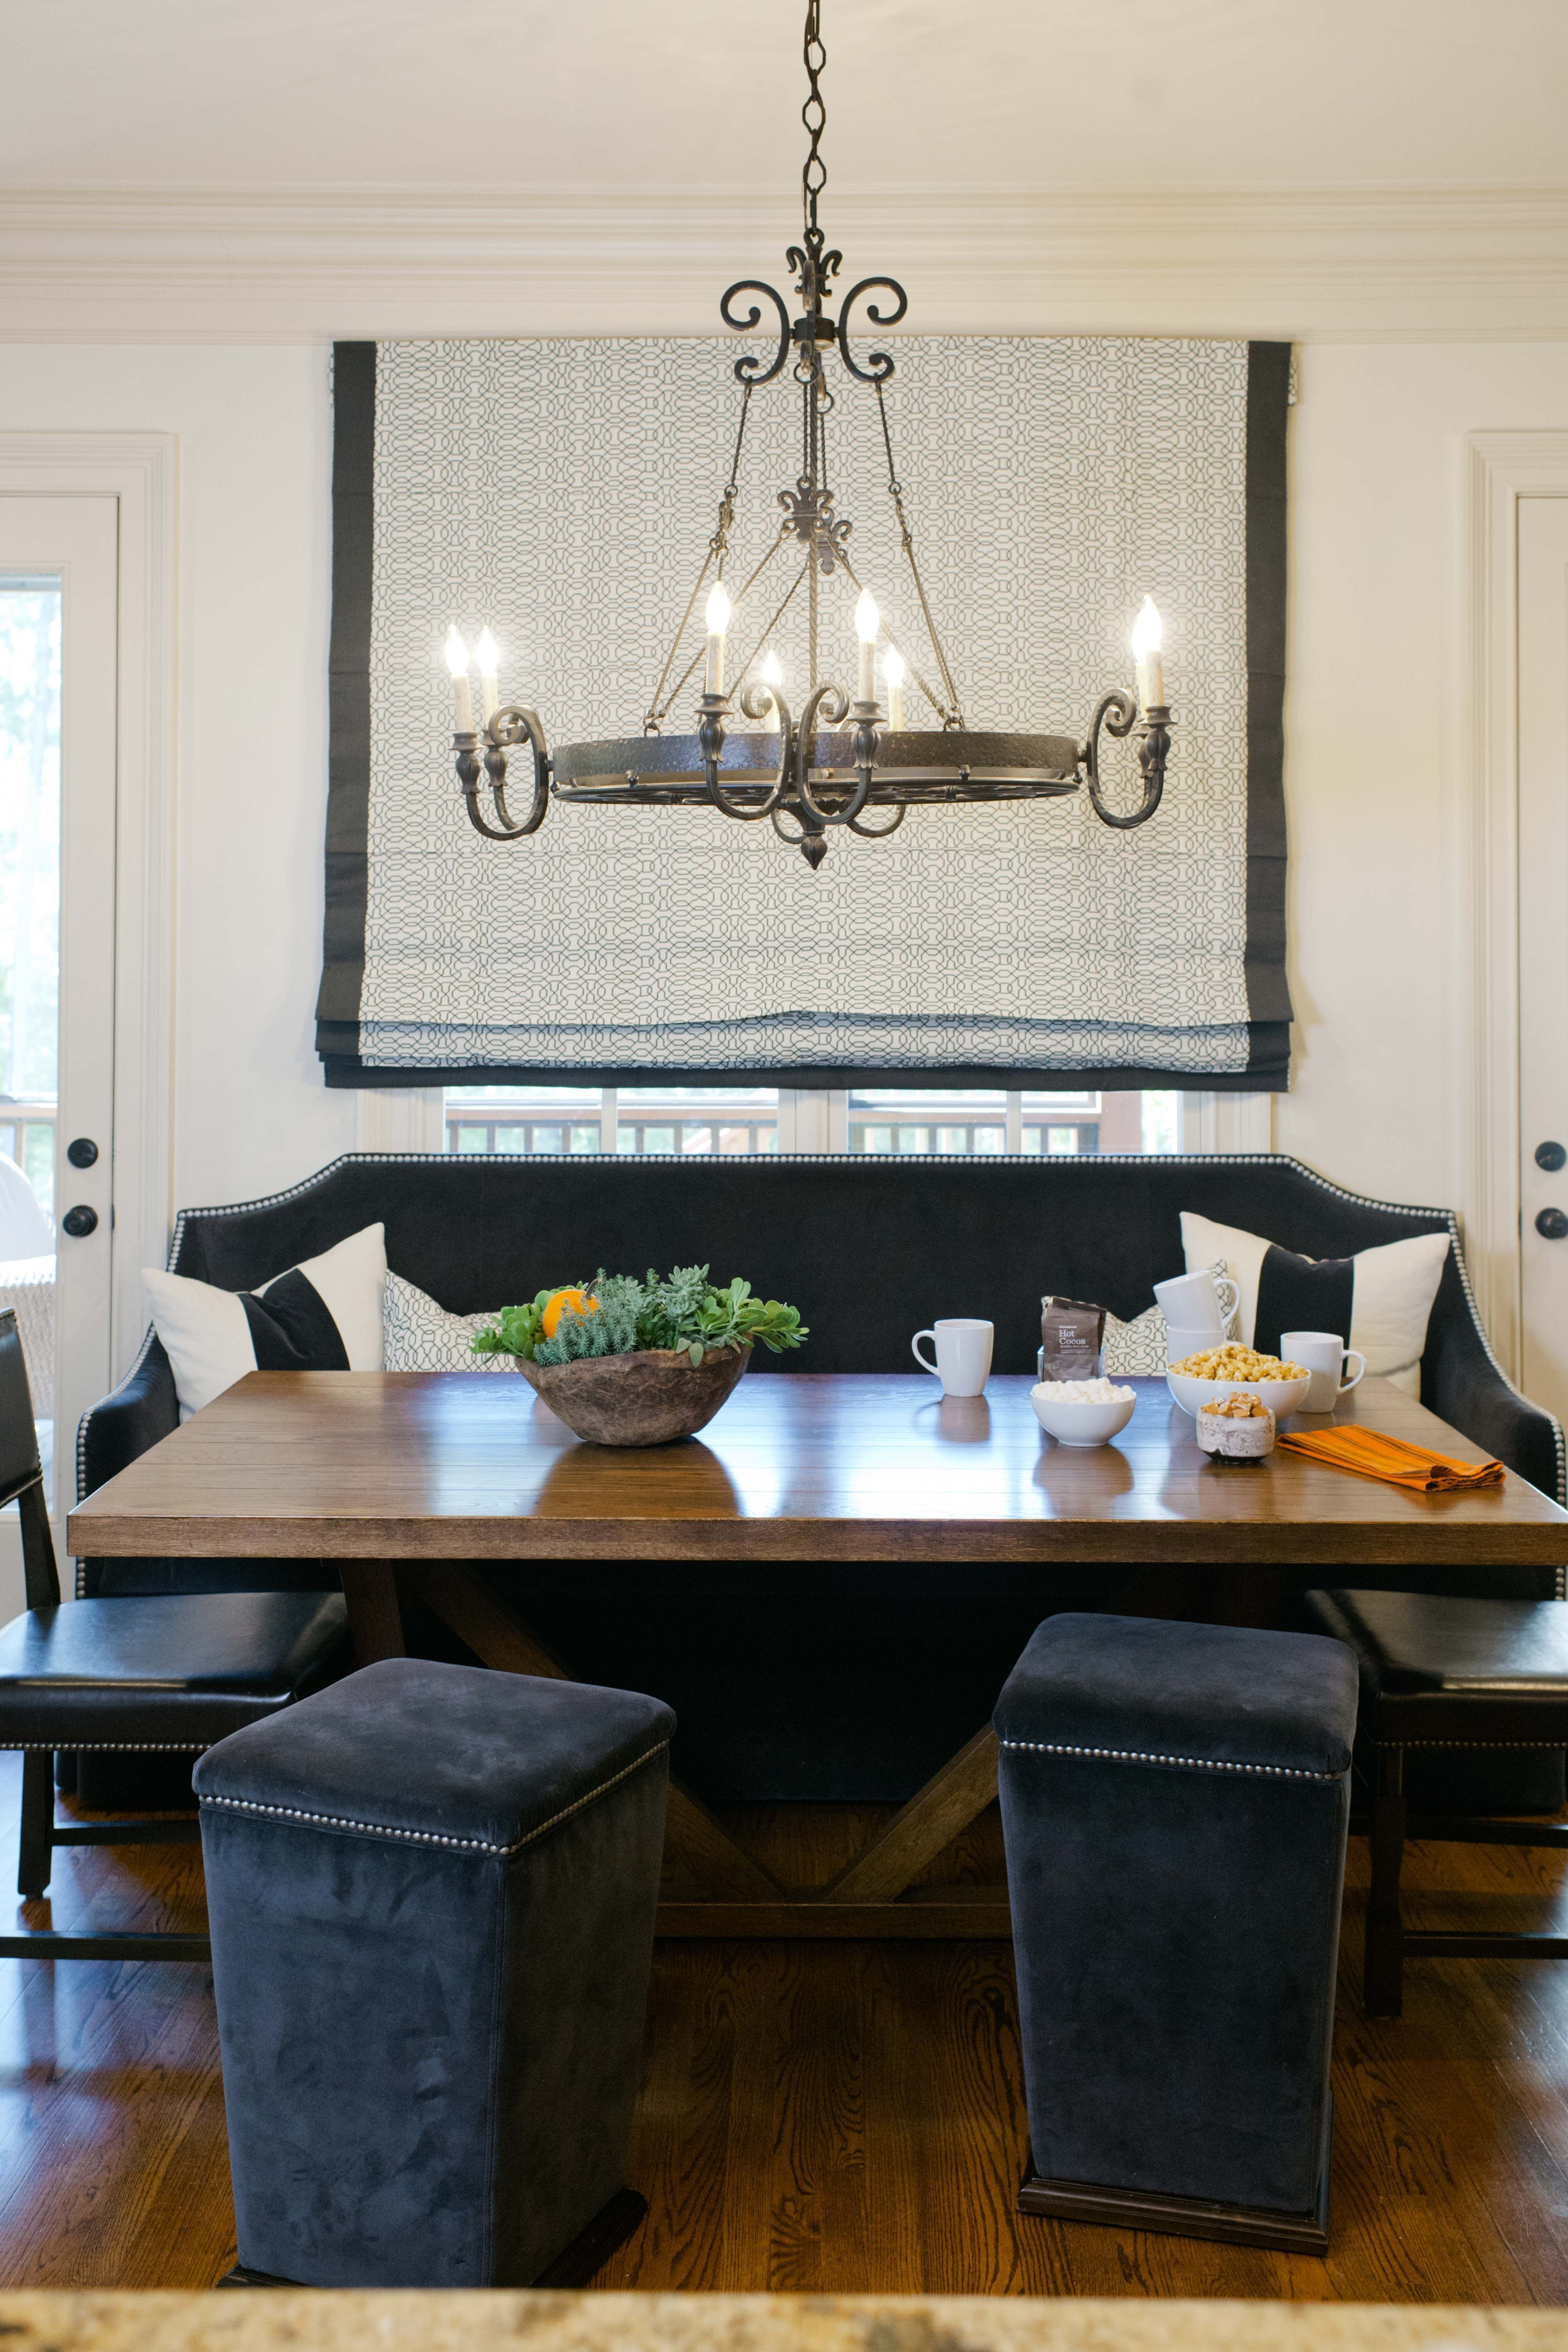 Pin On Dining Room Ideas Living dining room meaning